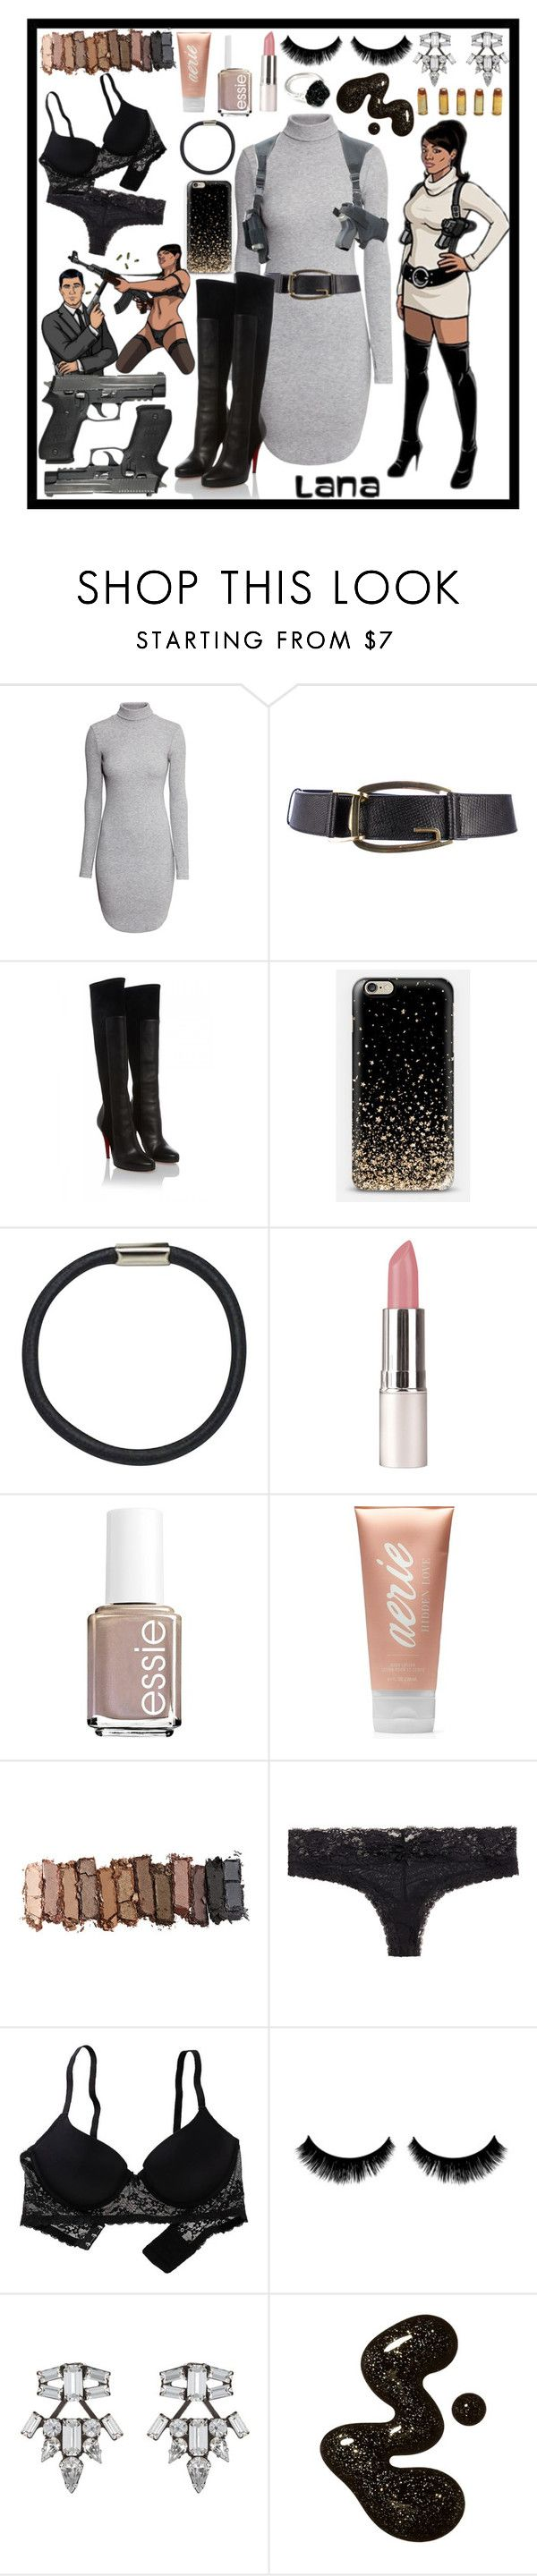 """Lana Kane -- Archer"" by im-a-fancy-unicorn ❤ liked on Polyvore featuring H&M, Gucci, Christian Louboutin, Hershesons, Essie, Aerie, Urban Decay, DANNIJO and LeiVanKash"